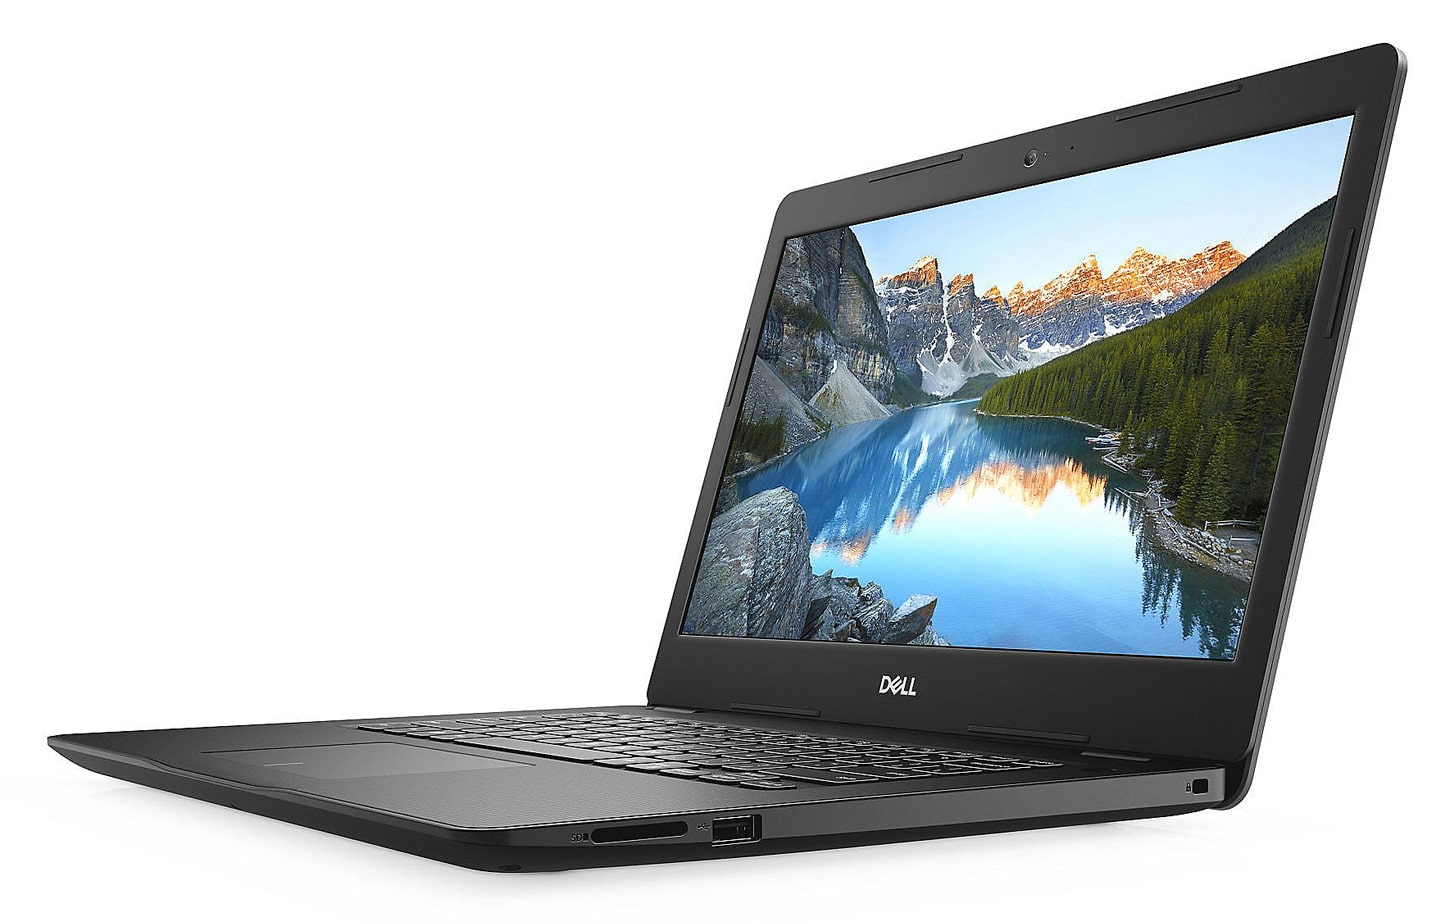 Dell Inspiron 14 3481, 14 pouces rapide SSD 512 Go (454€)